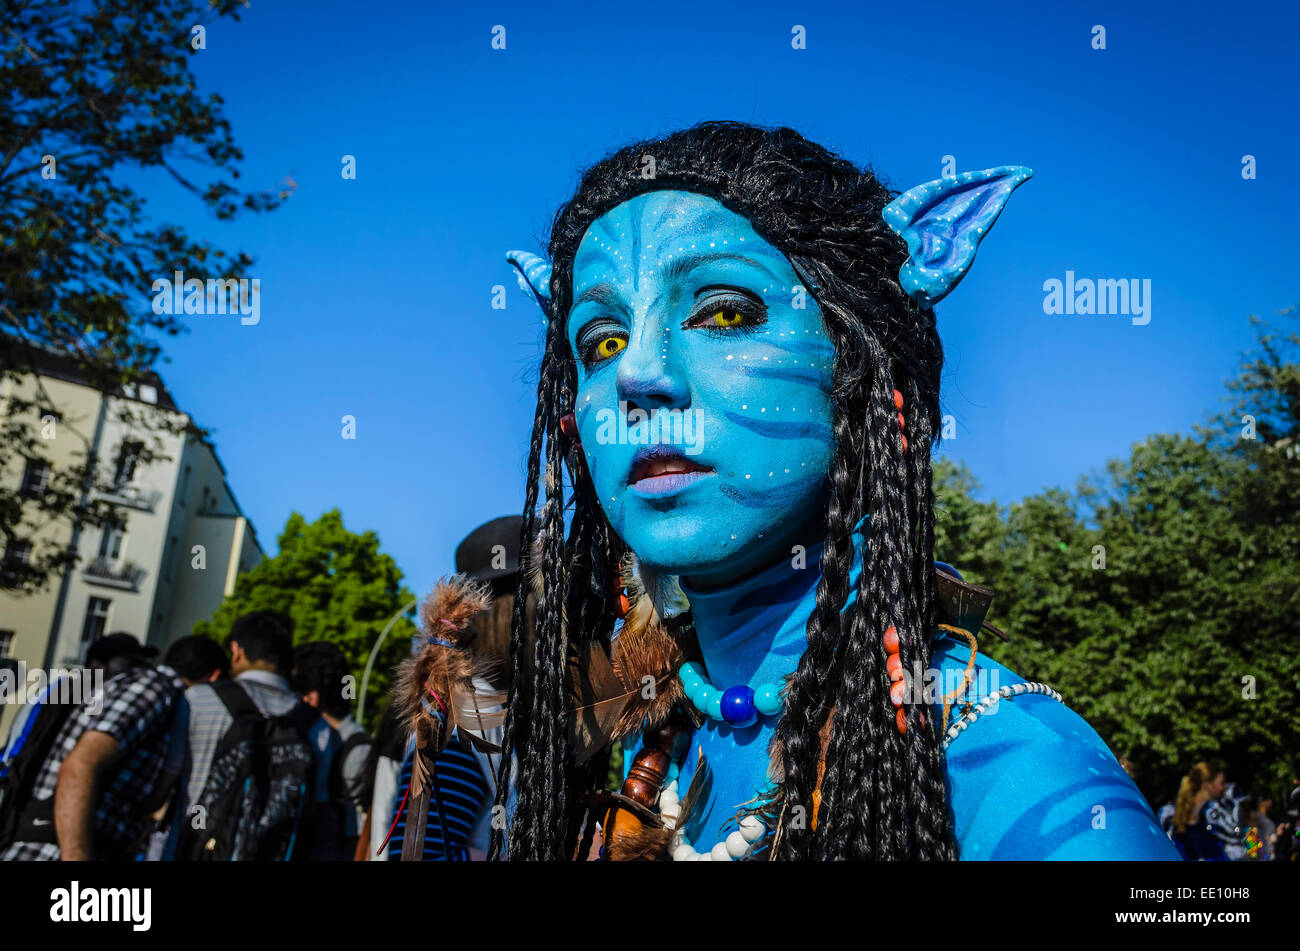 Annual street parade 'Carnival of Cultures' through Kreuzberg, Berlin, Germany - Stock Image